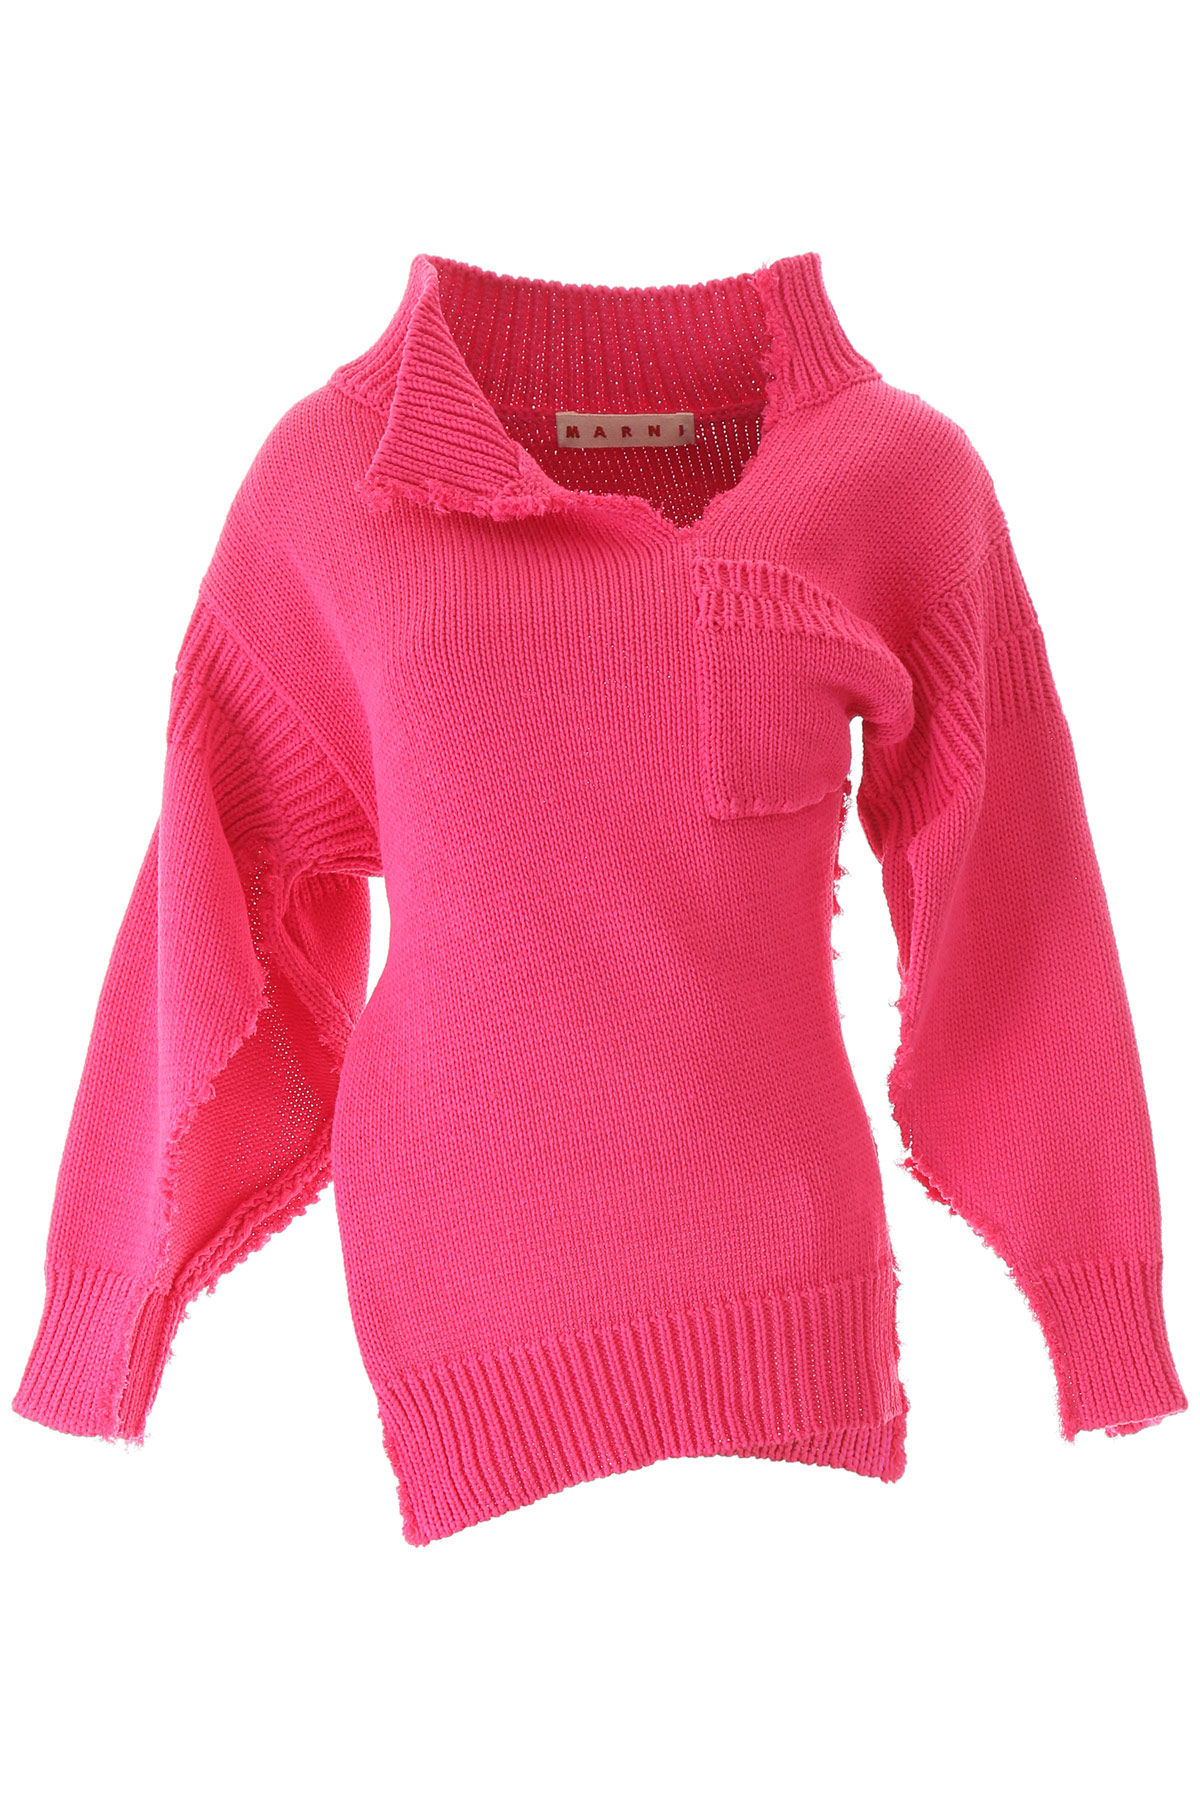 MARNI COTTON SWEATER 40 Fuchsia, Pink Cotton